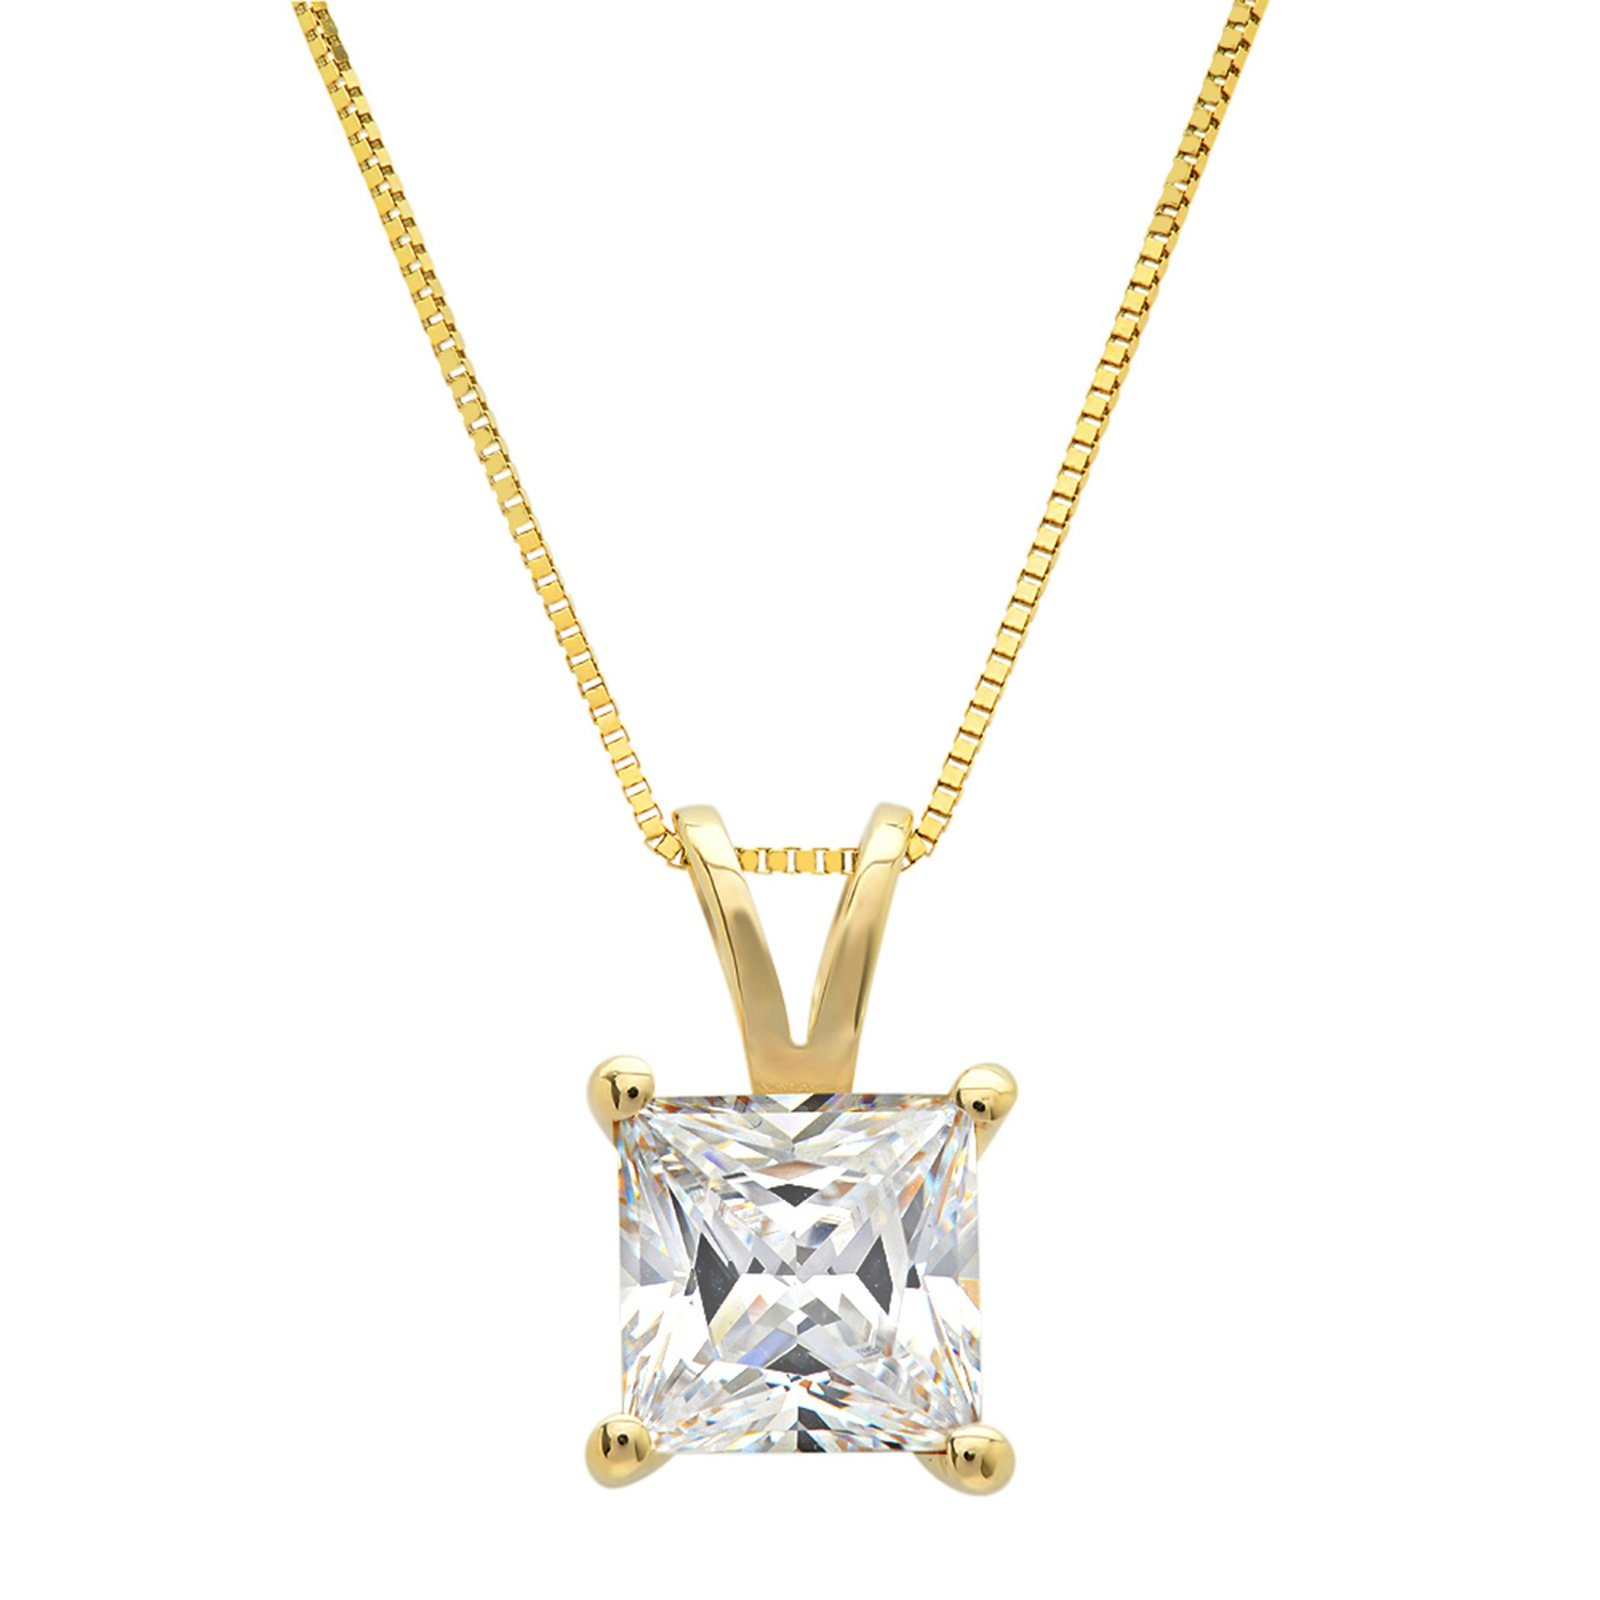 2.05 ct Brilliant Princess Cut Highest Quality Created White Sapphire Ideal VVS1 D Solitaire Pendant Necklace With 16'' Gold Chain box Solid 14k Yellow Gold